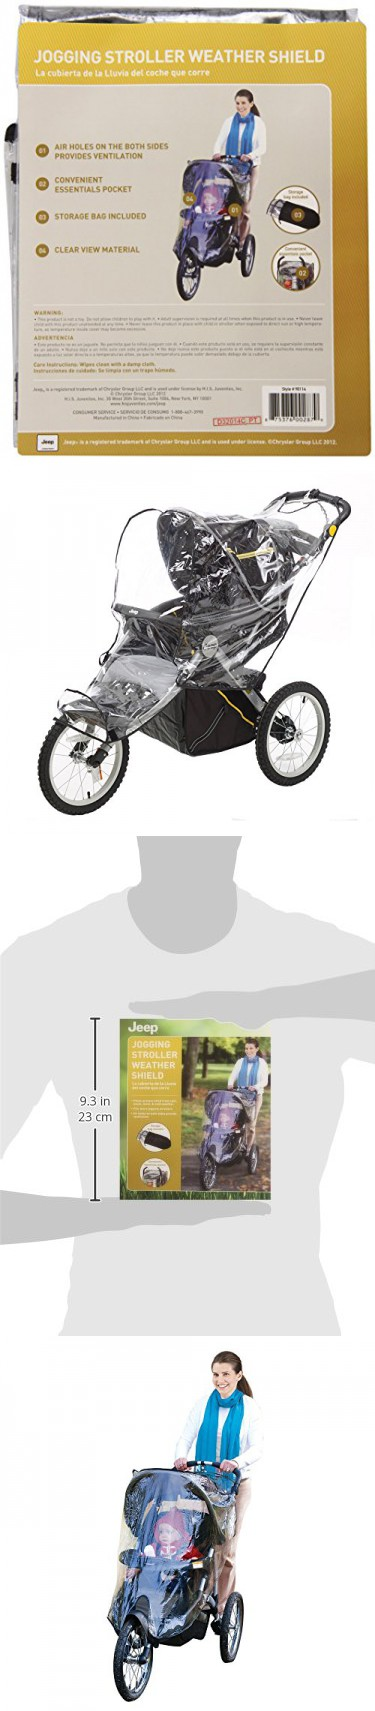 J is for Jeep Jogging Stroller Weather Shield, Baby Rain